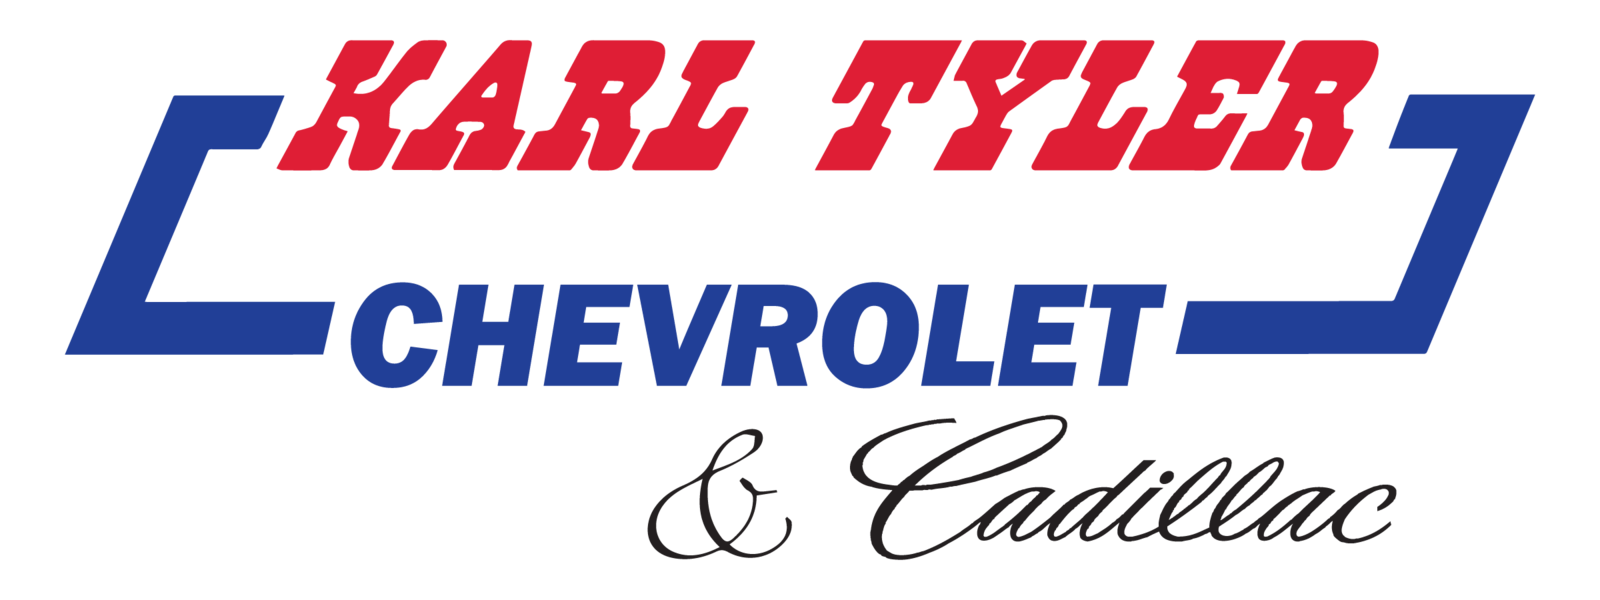 Karl Tyler Chevrolet Cadillac - Missoula, MT: Read Consumer reviews